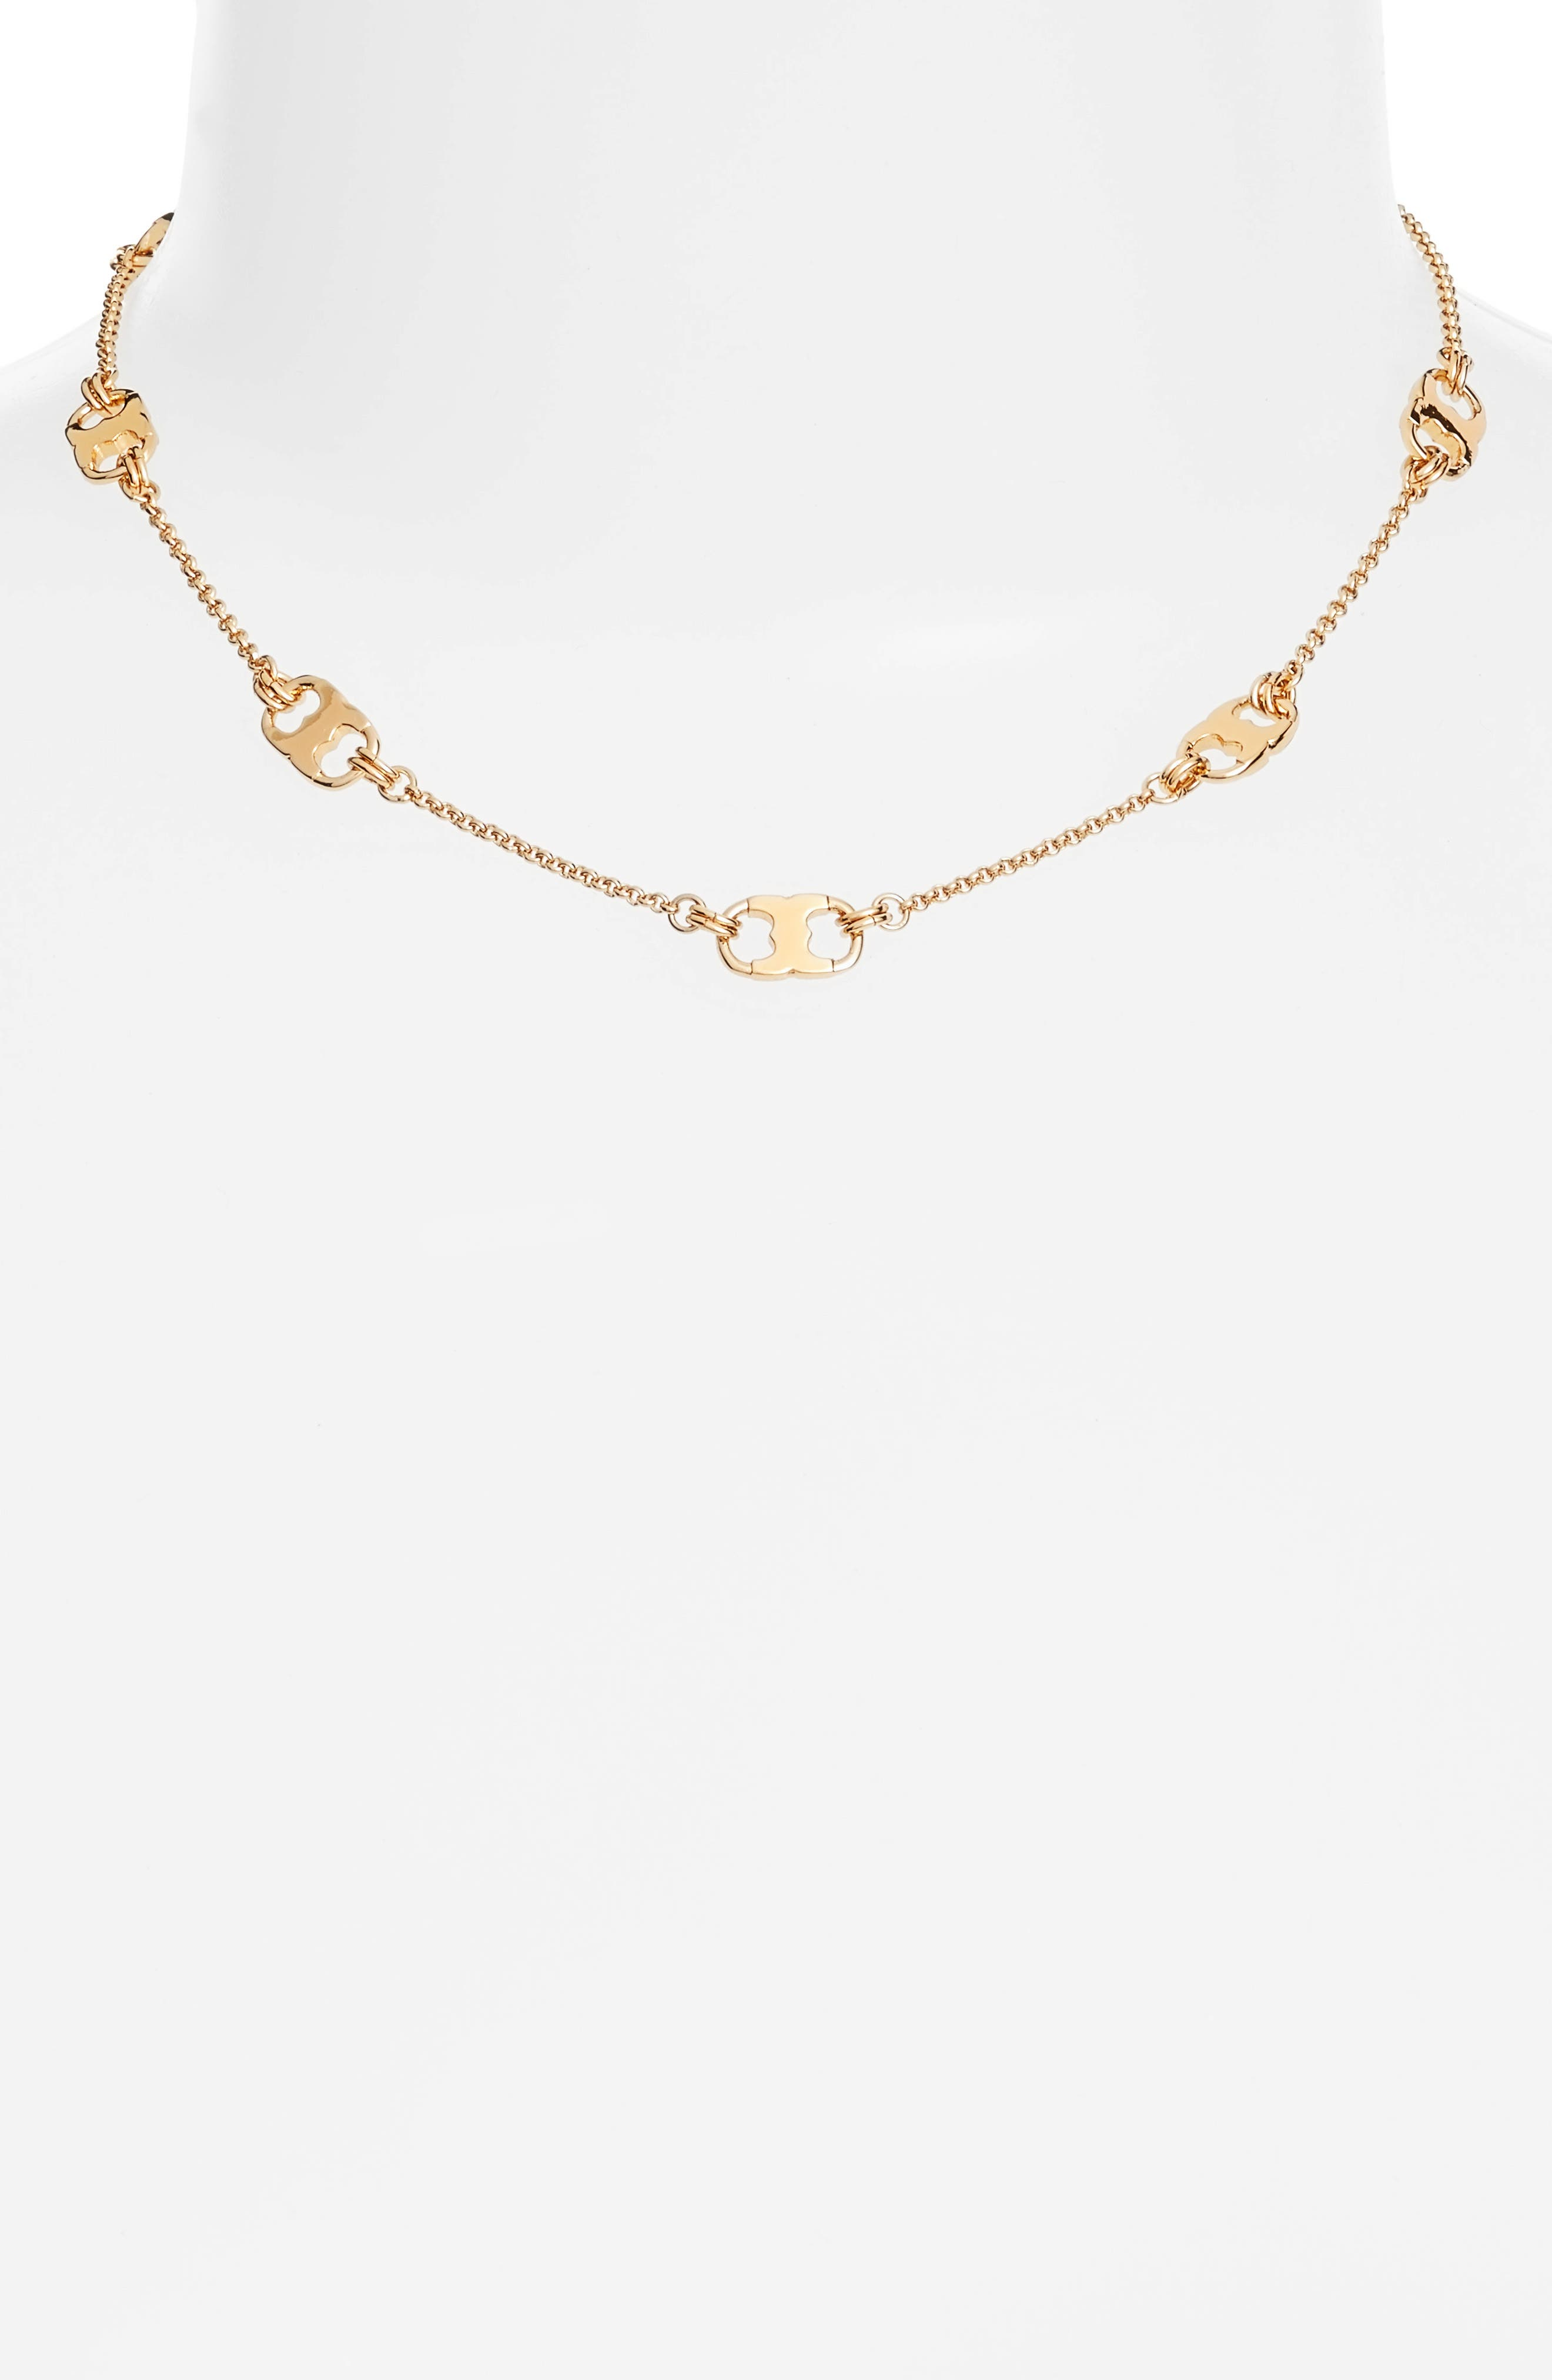 Main Image - Tory Burch Gemini Link Station Necklace